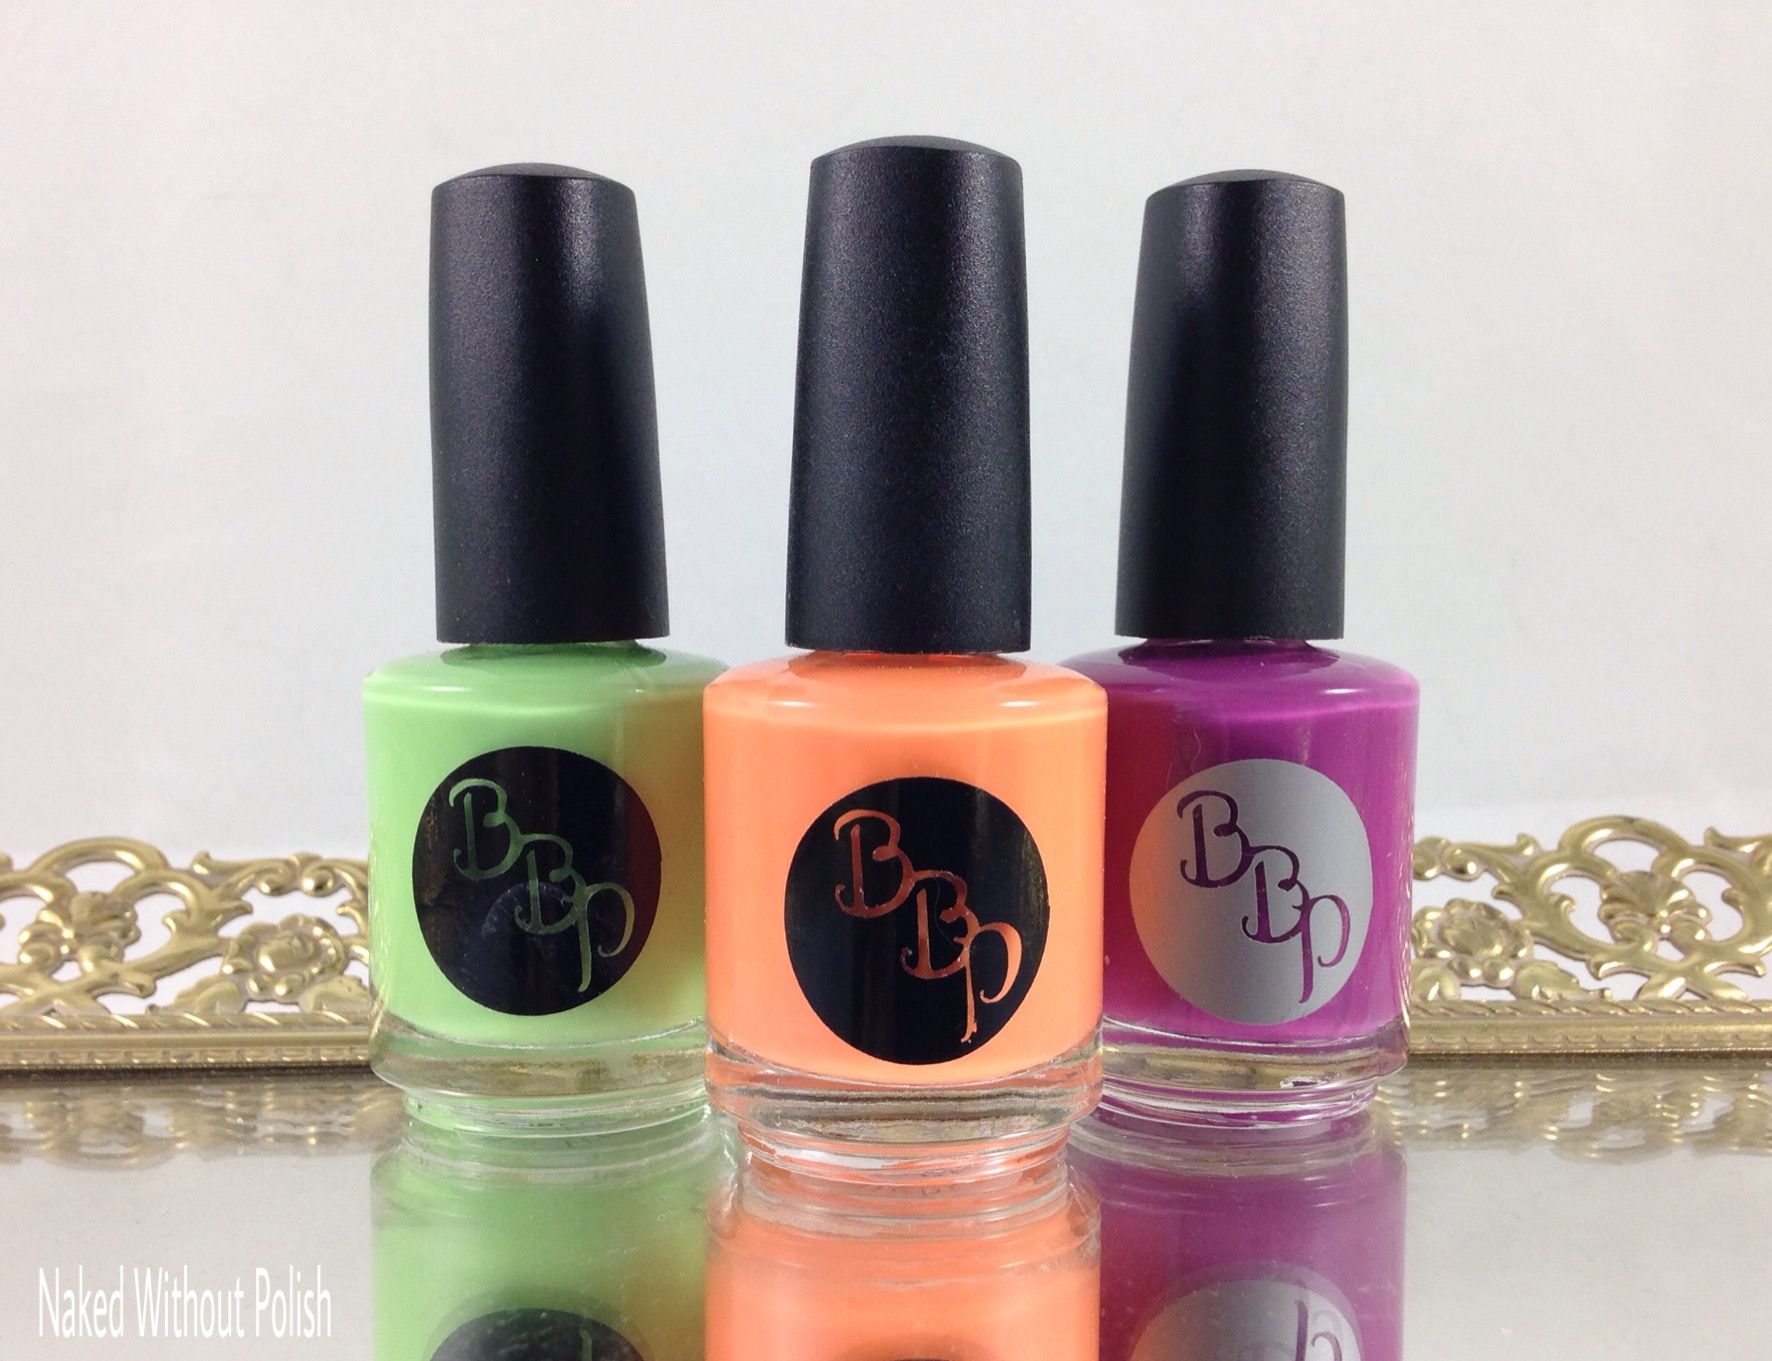 Bad-Bitch-Polish-Spooktacular-Creams-Trio-1